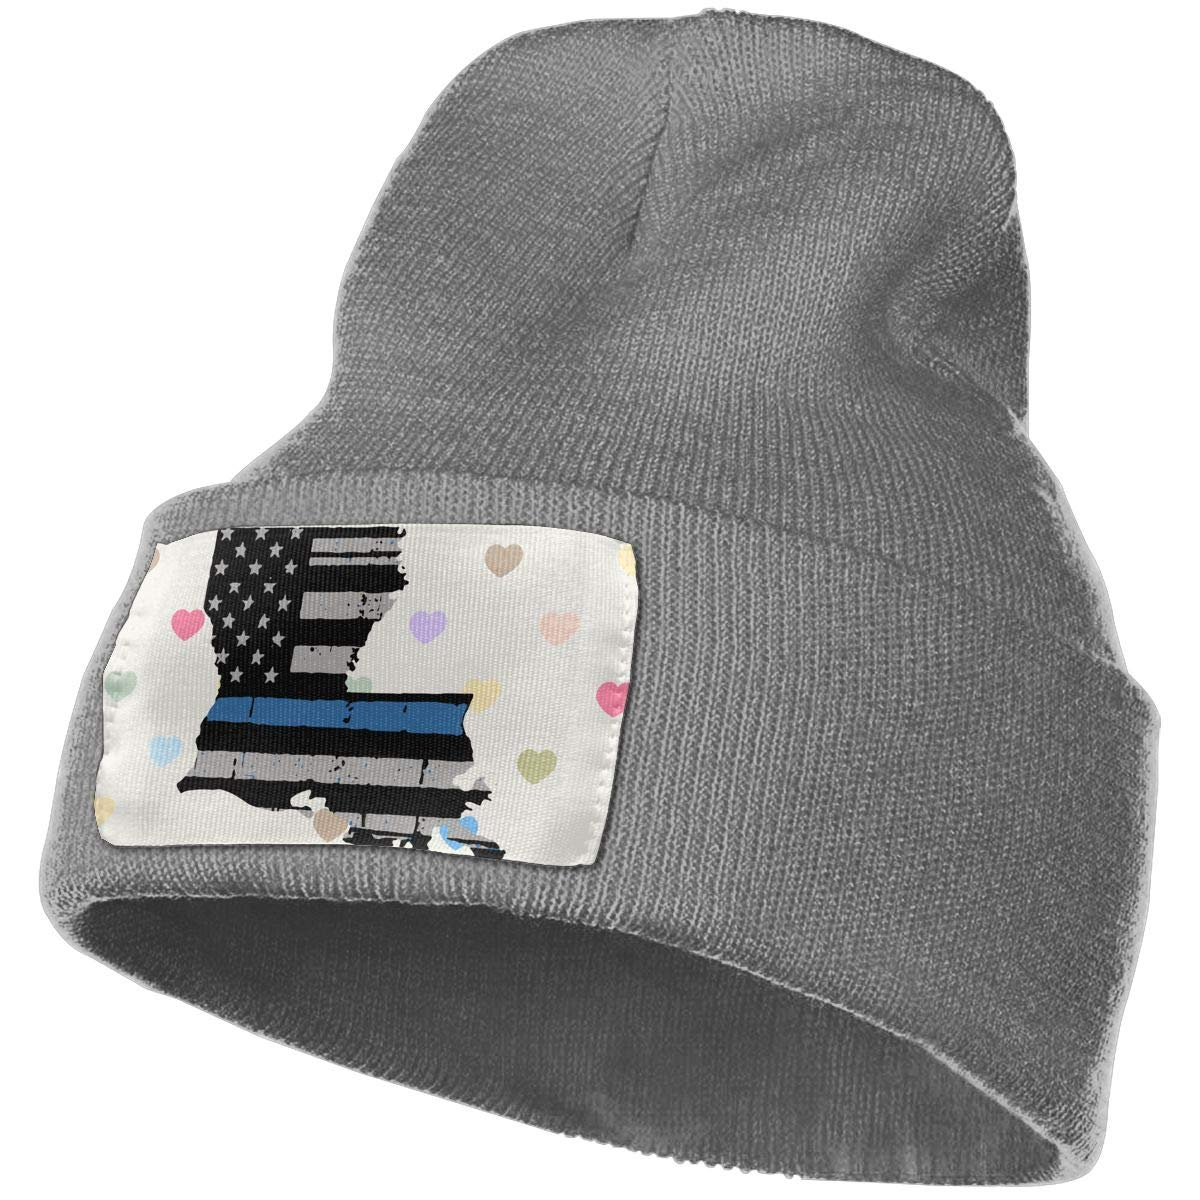 TAOMAP89 Thin Blue Line USA Flag Women and Men Skull Caps Winter Warm Stretchy Knit Beanie Hats